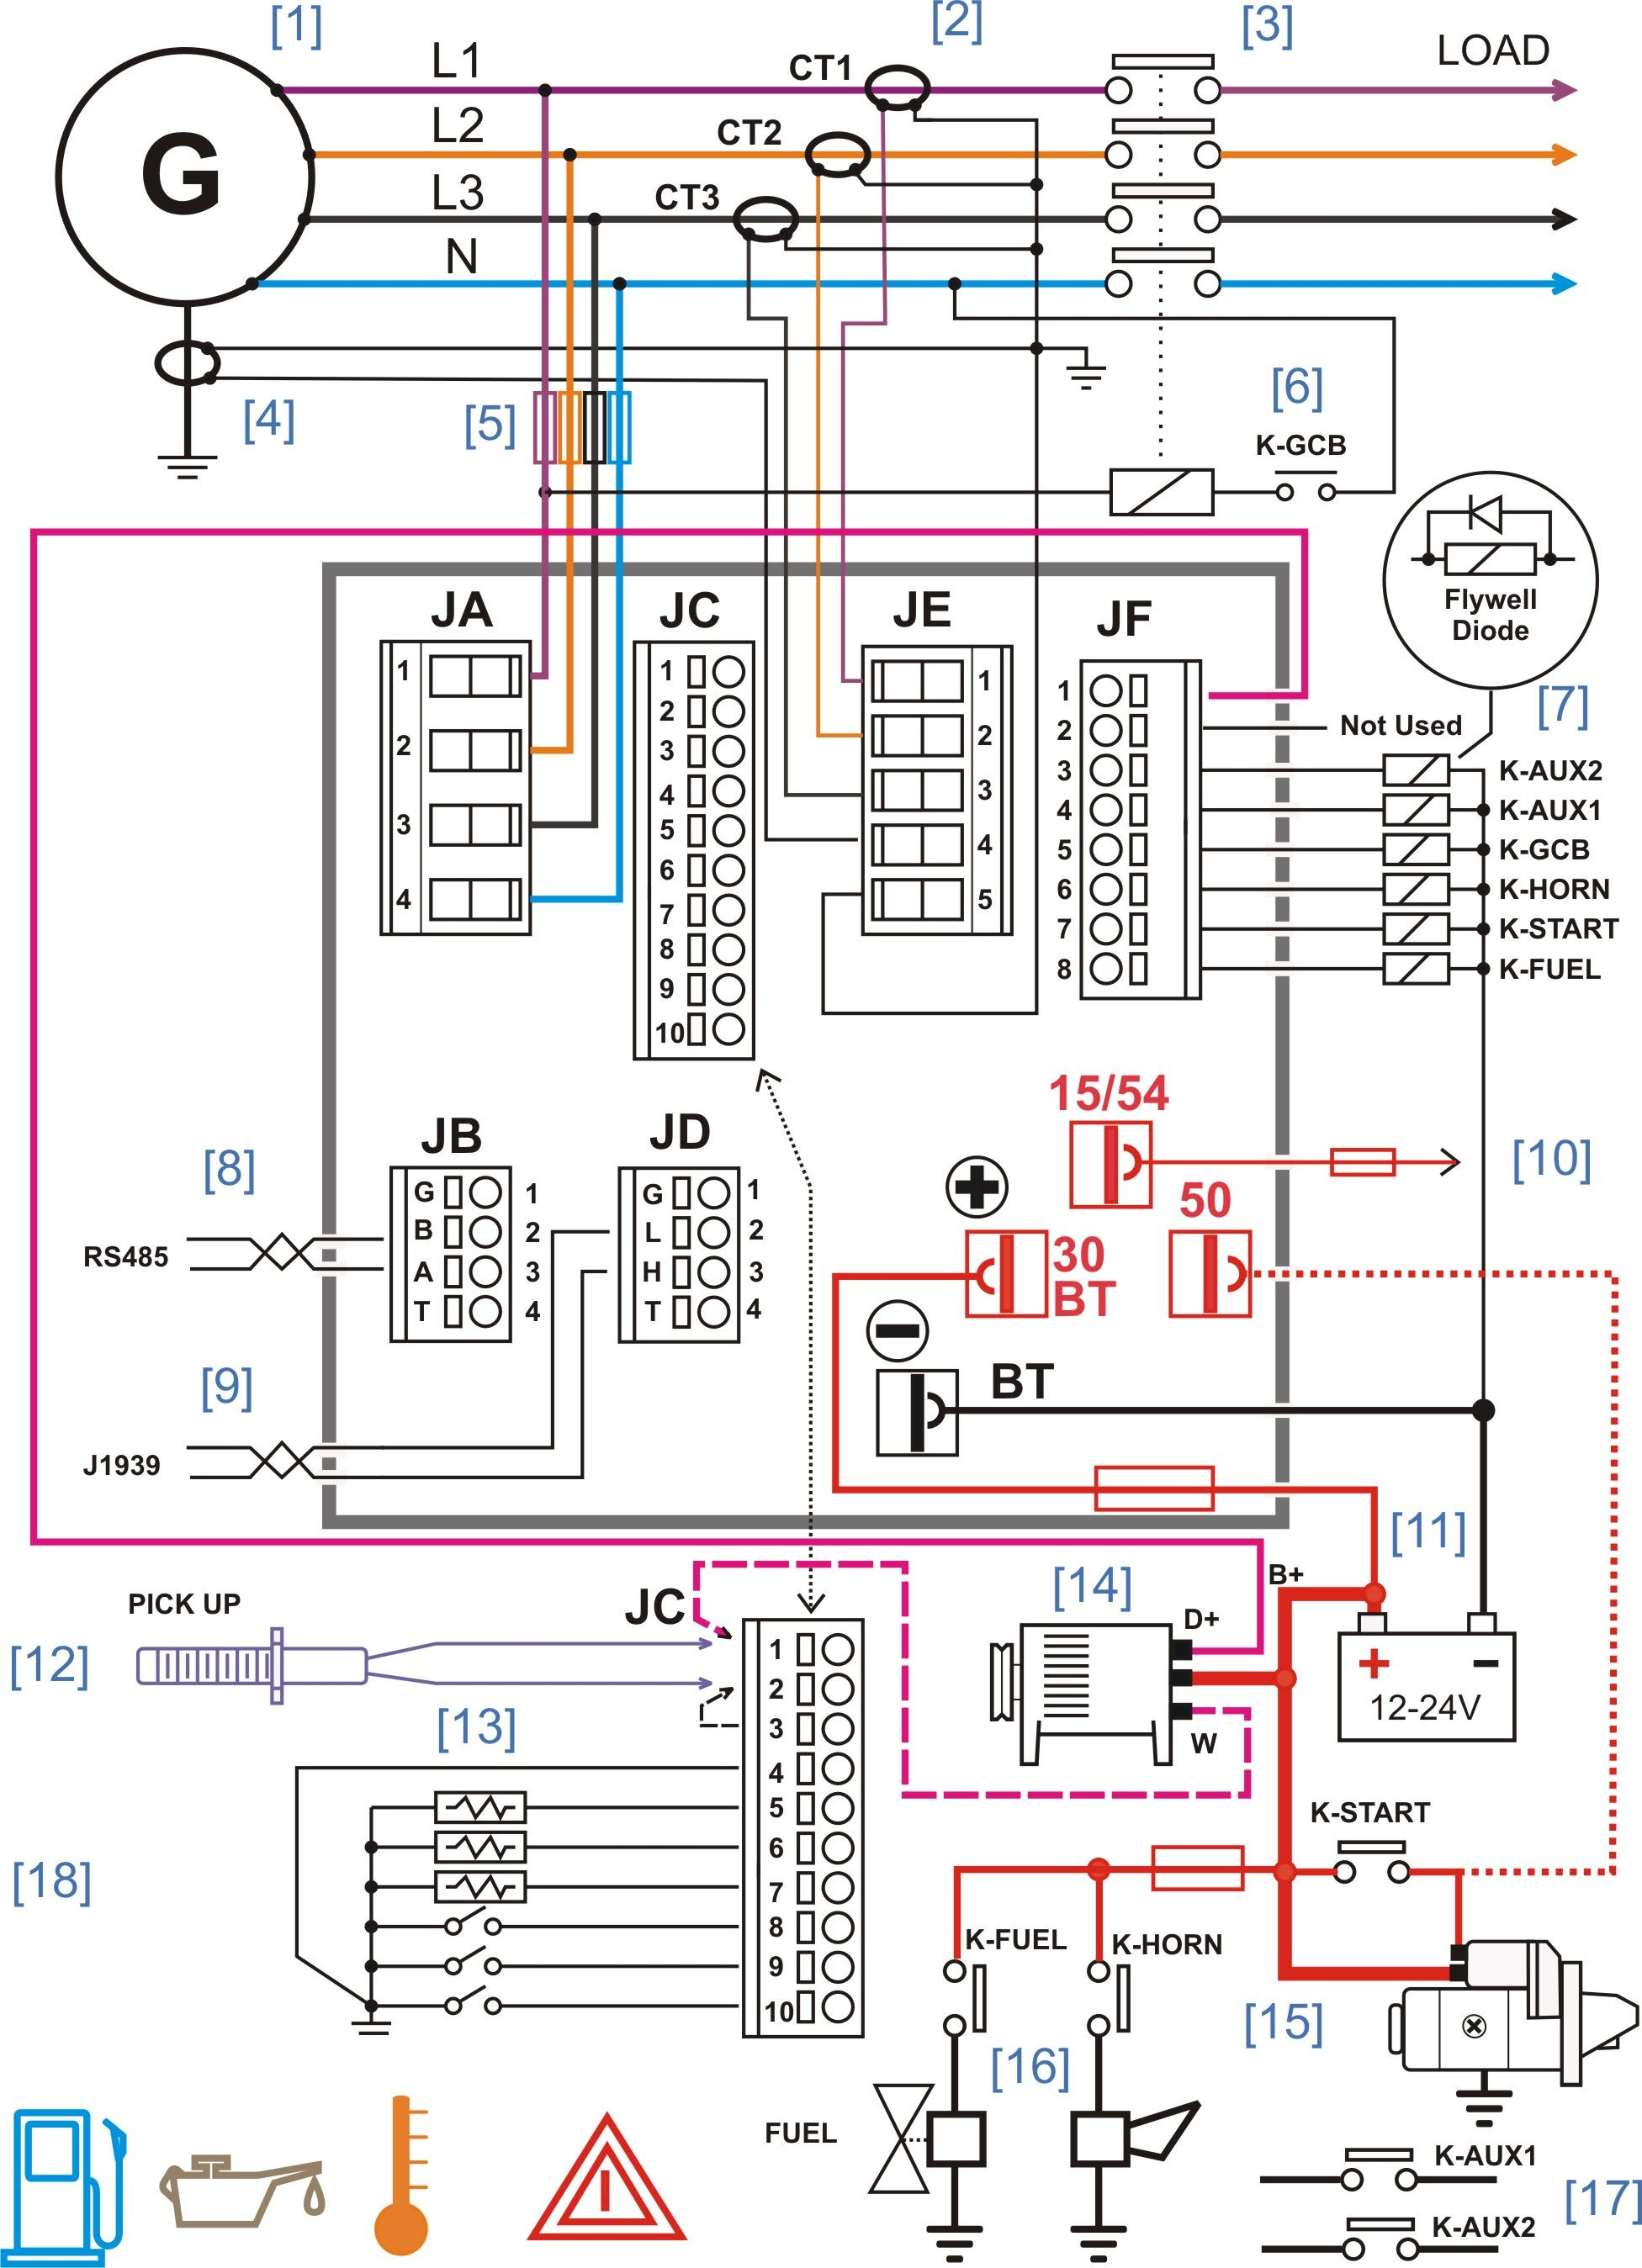 plc wiring diagram pdf wiring diagram blogs 1999 club car 48v electric golf cart wiring diagrams [ 1952 x 2697 Pixel ]